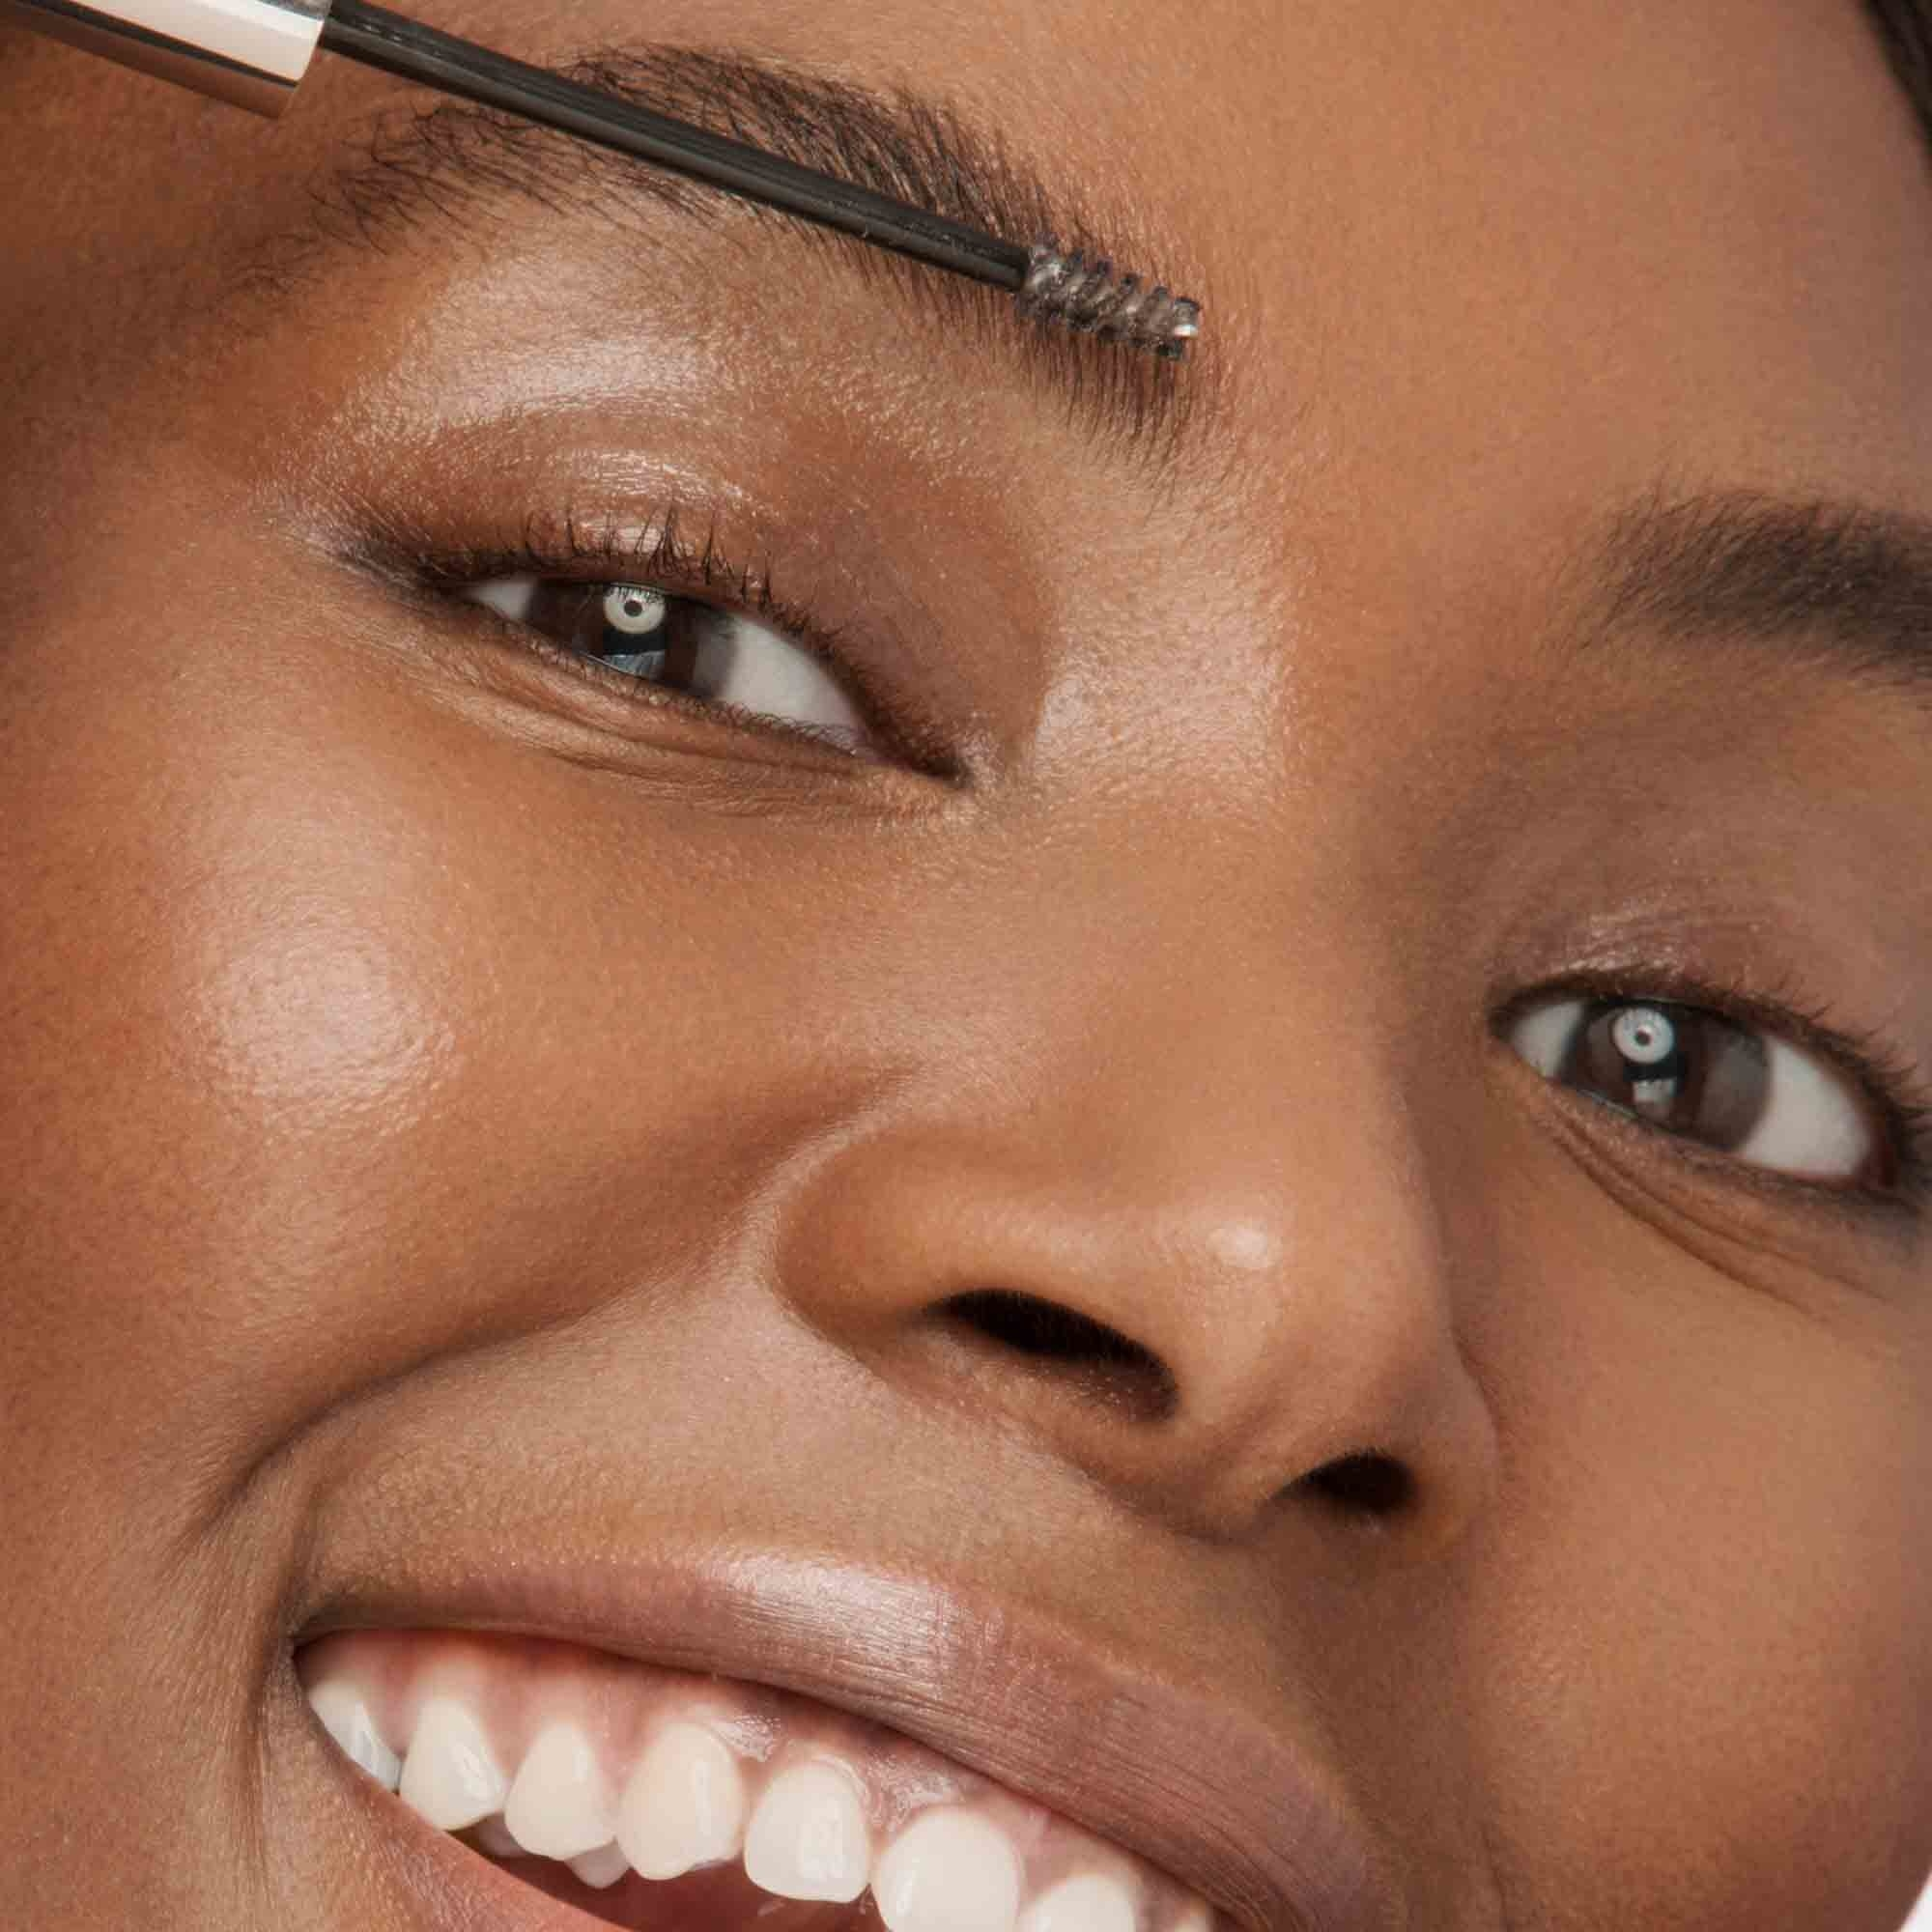 Woman applying Arch-ology Tinted Eyebrow Sculpting Gel on face